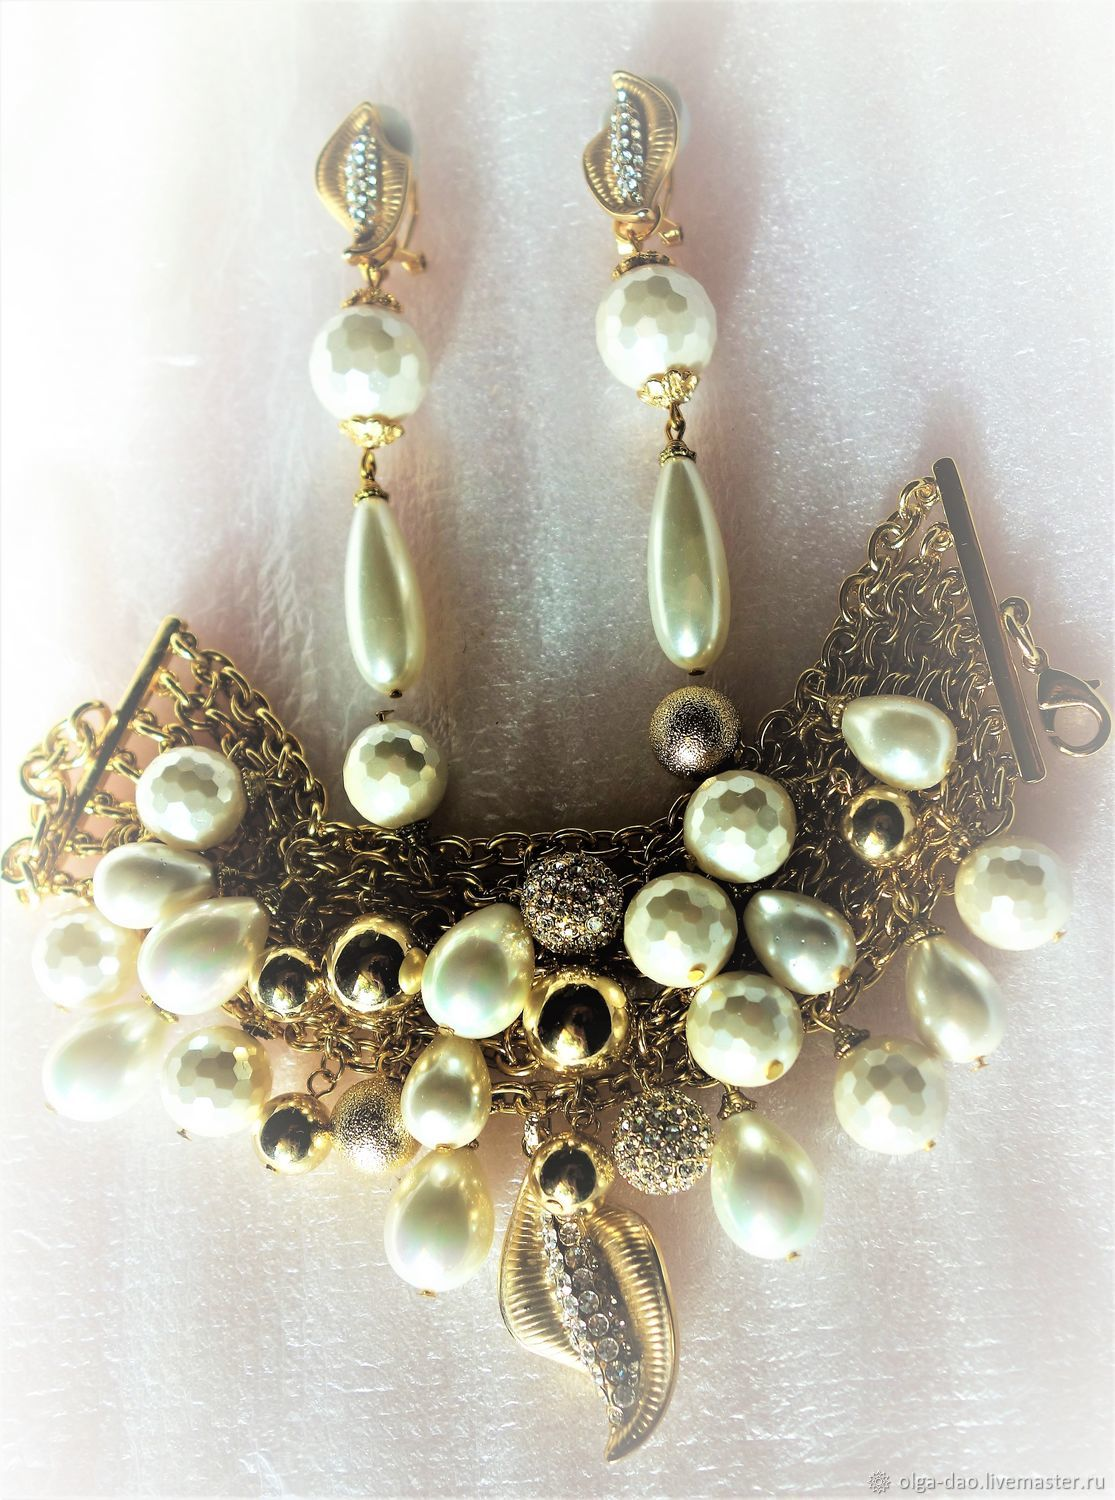 Chanel				Gold set with pearls handmade. Fair Masters - handmade. Buy a Bracelet and earrings with Majorca pearls and gold.585 Handmade.